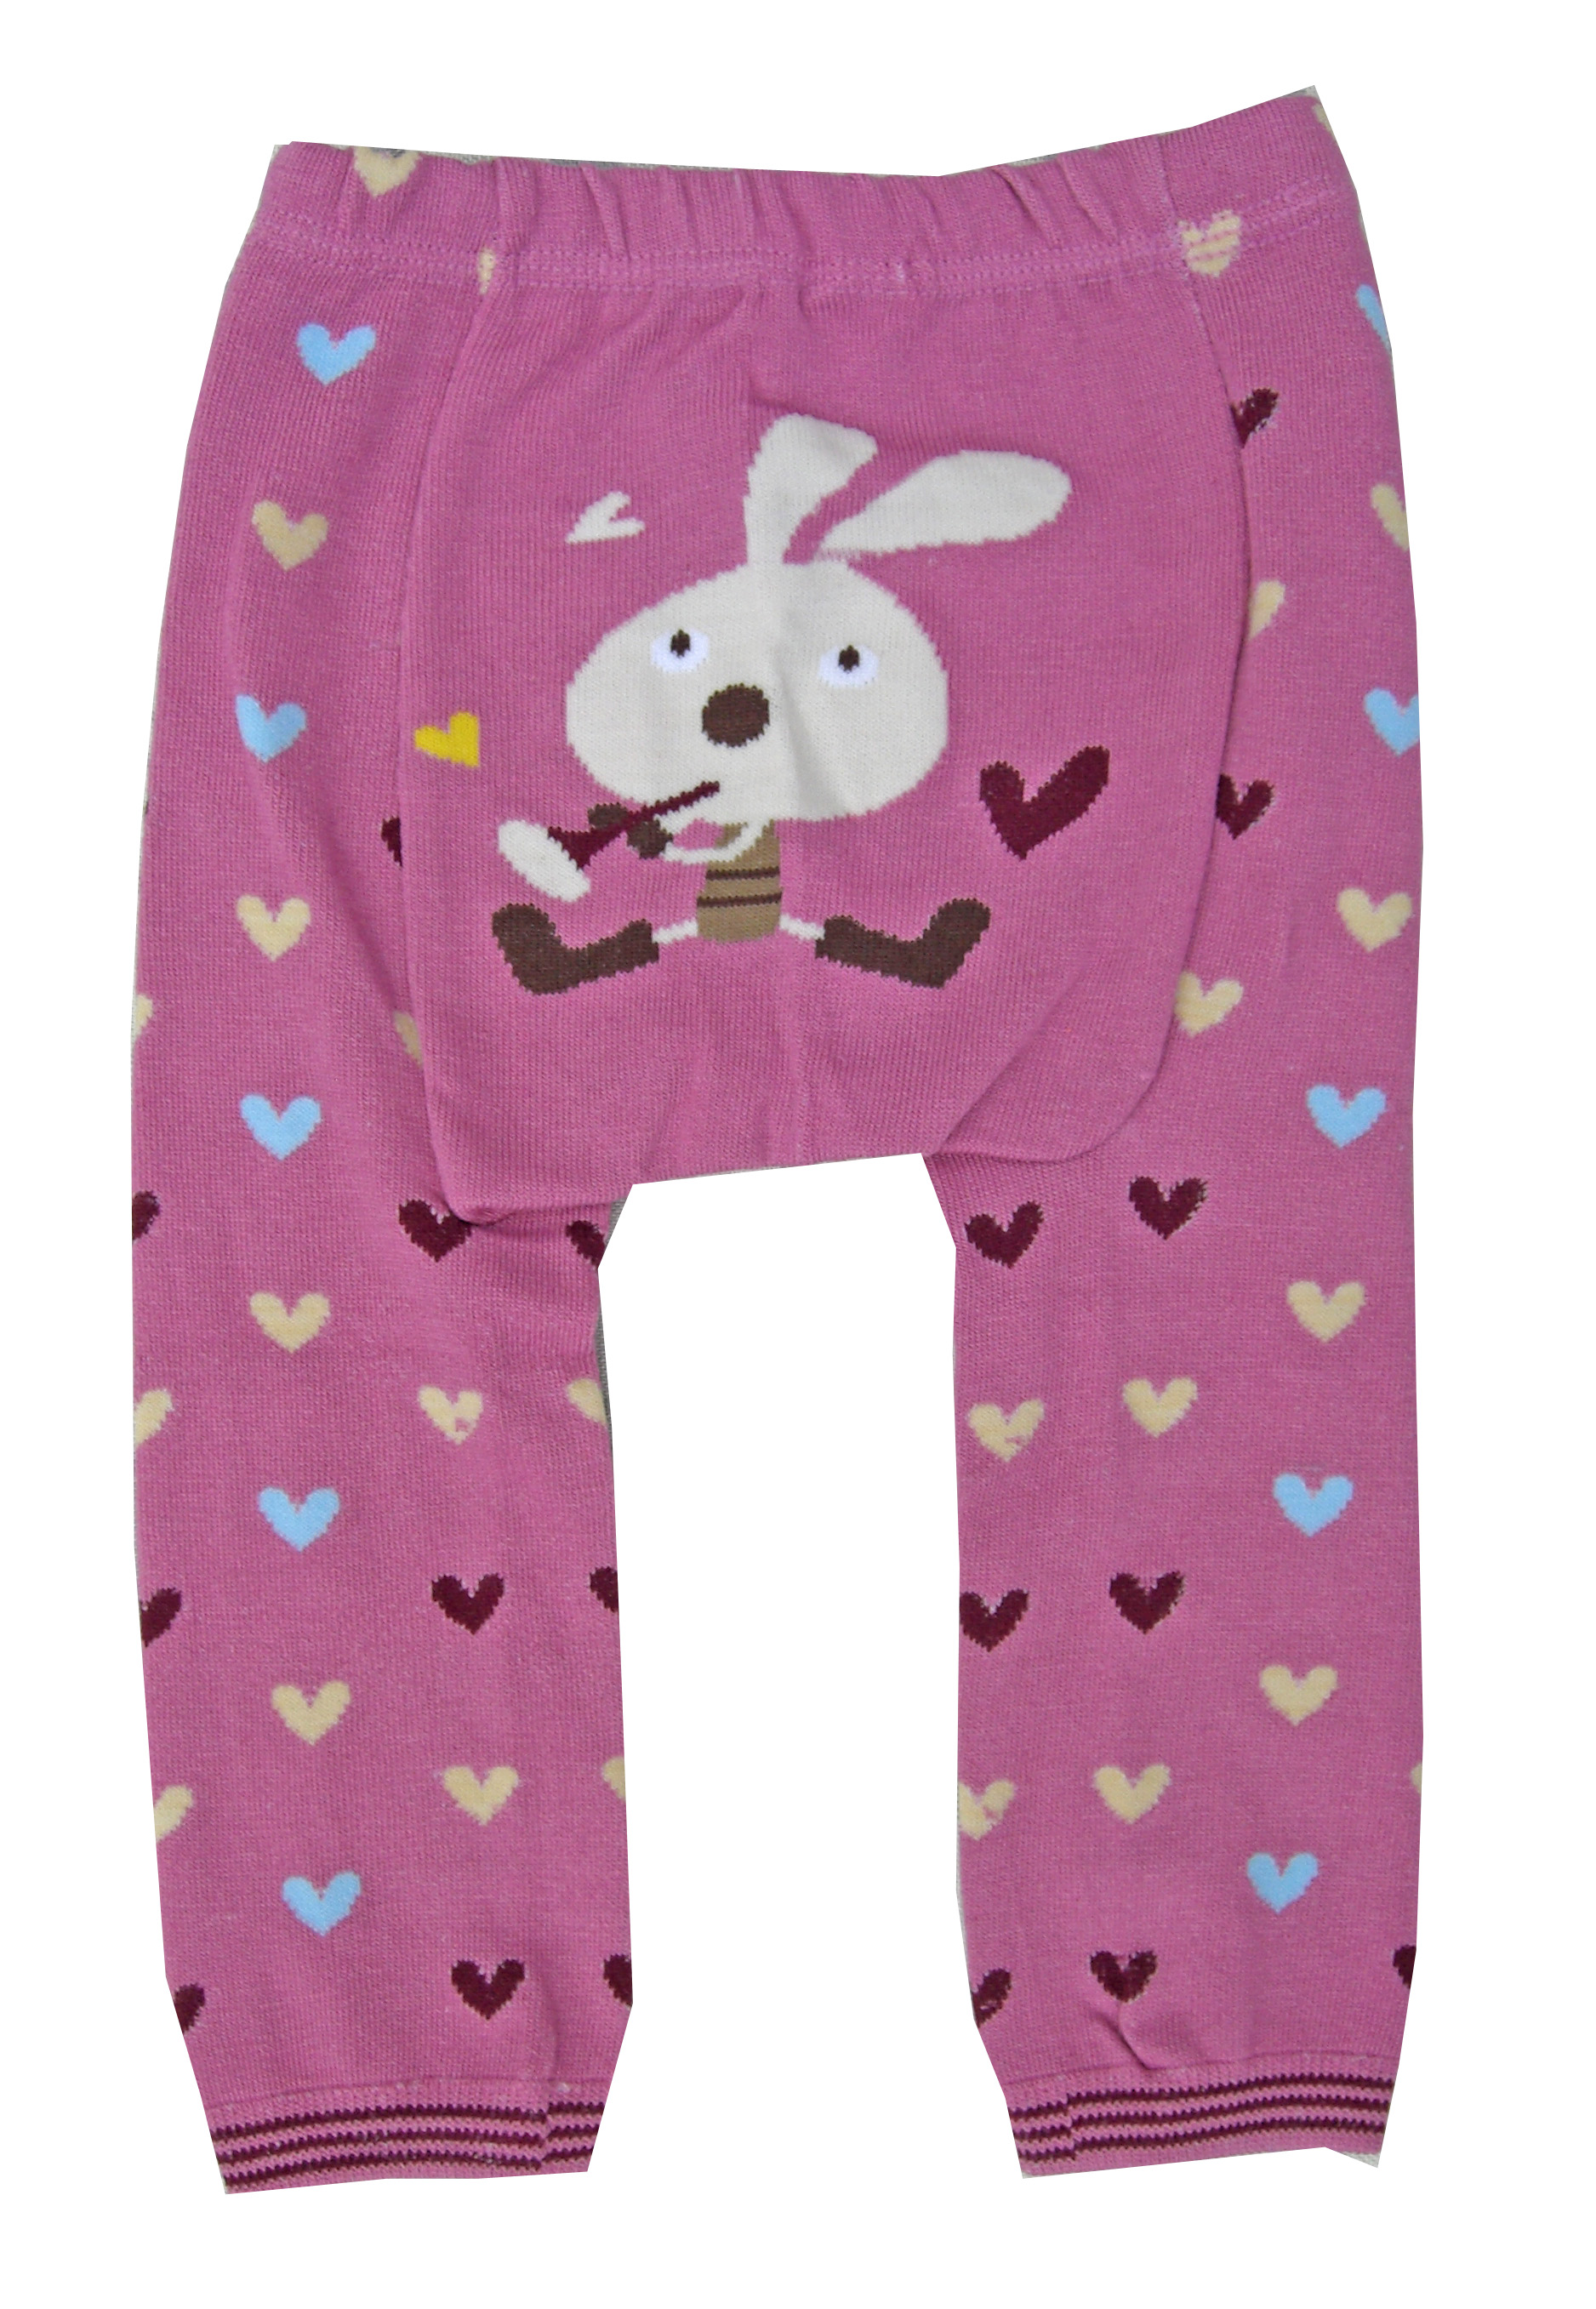 Bunny_with_flute_and_hearts_legging_pants_for_kids_girls_baby_original